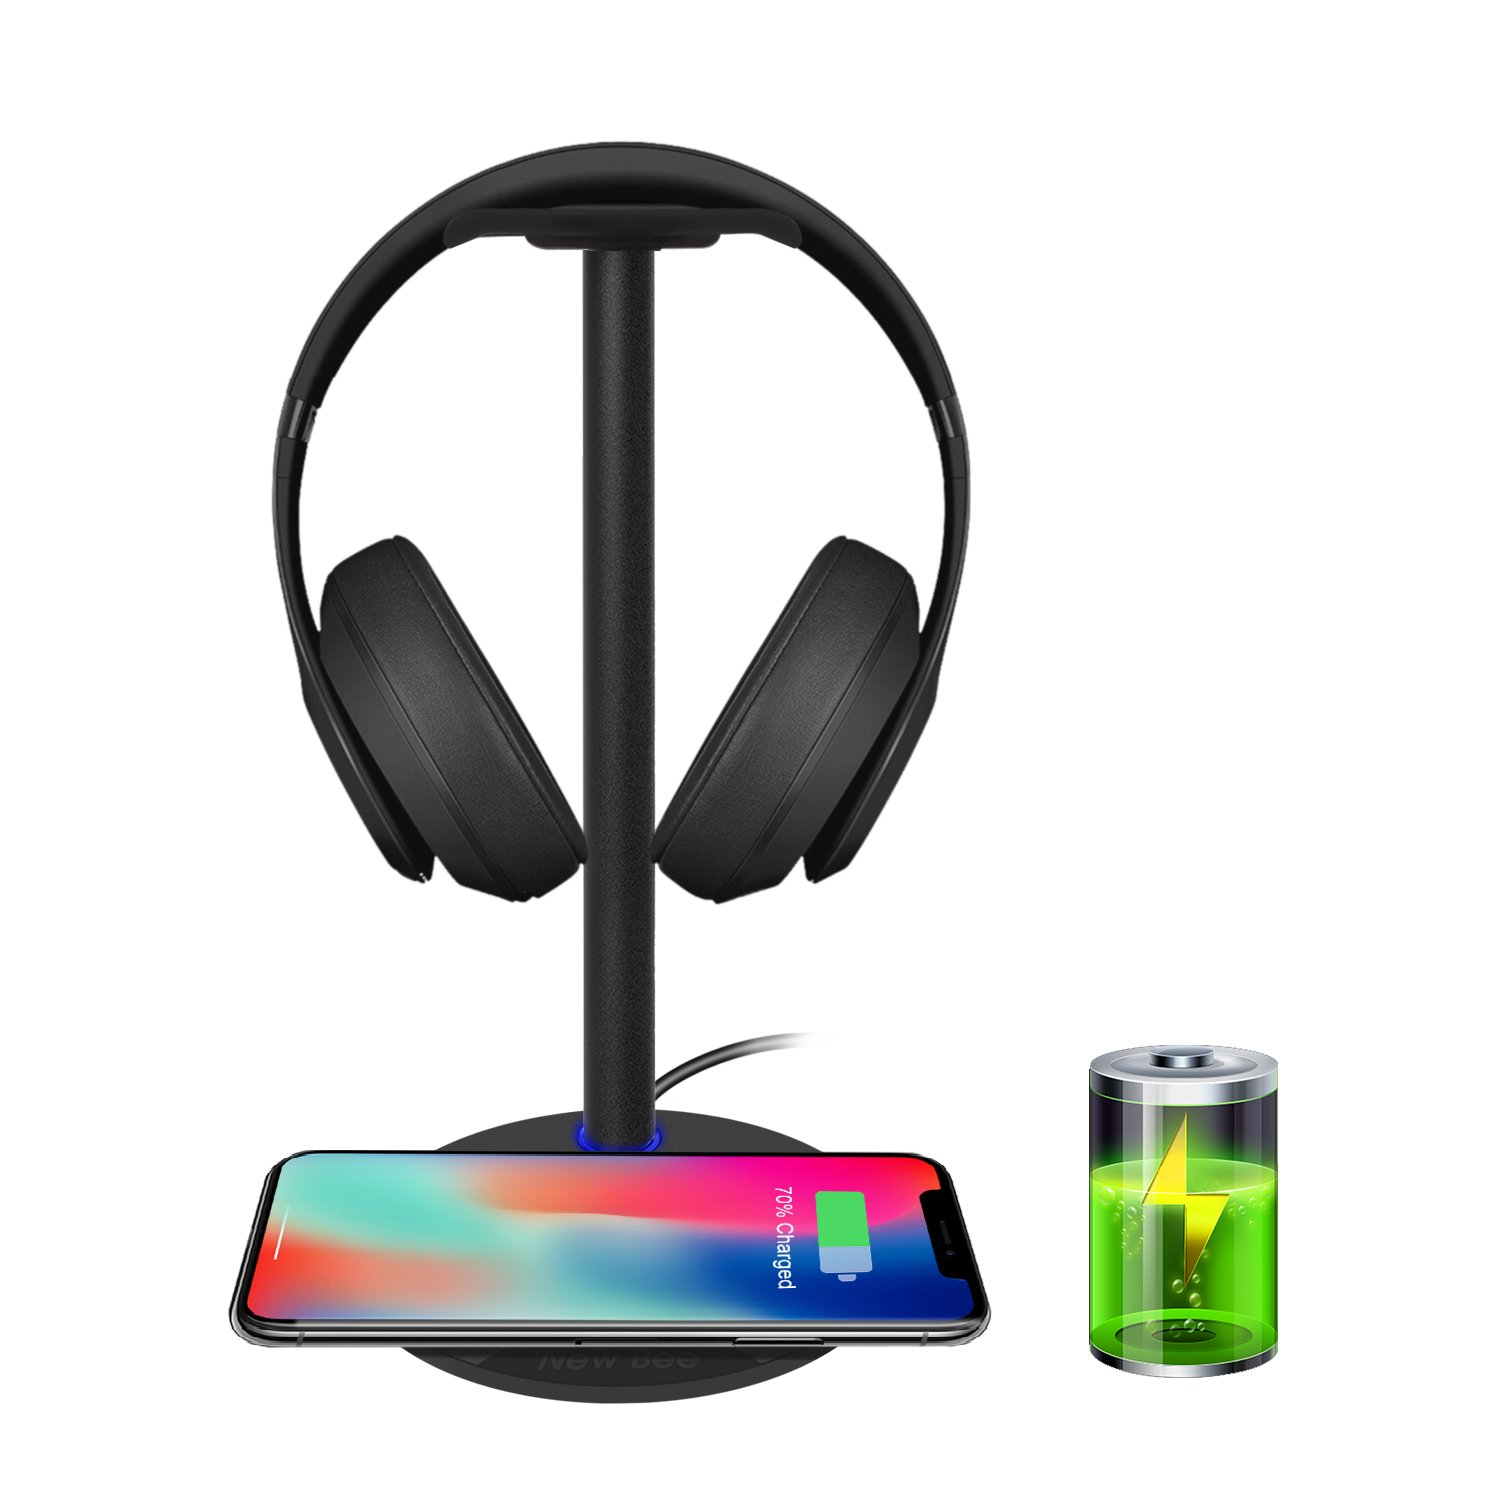 Wireless Charging with Headphone Stand New Bee Sturdy 2-in-1 Headset Holder & Wireless Charger Pad for iPhone 8/8 Plus/X Samsung S8/S8 PlusS7/S7 Edge/S6/S6 Edge with LED Indicator (Black) WirelessBK